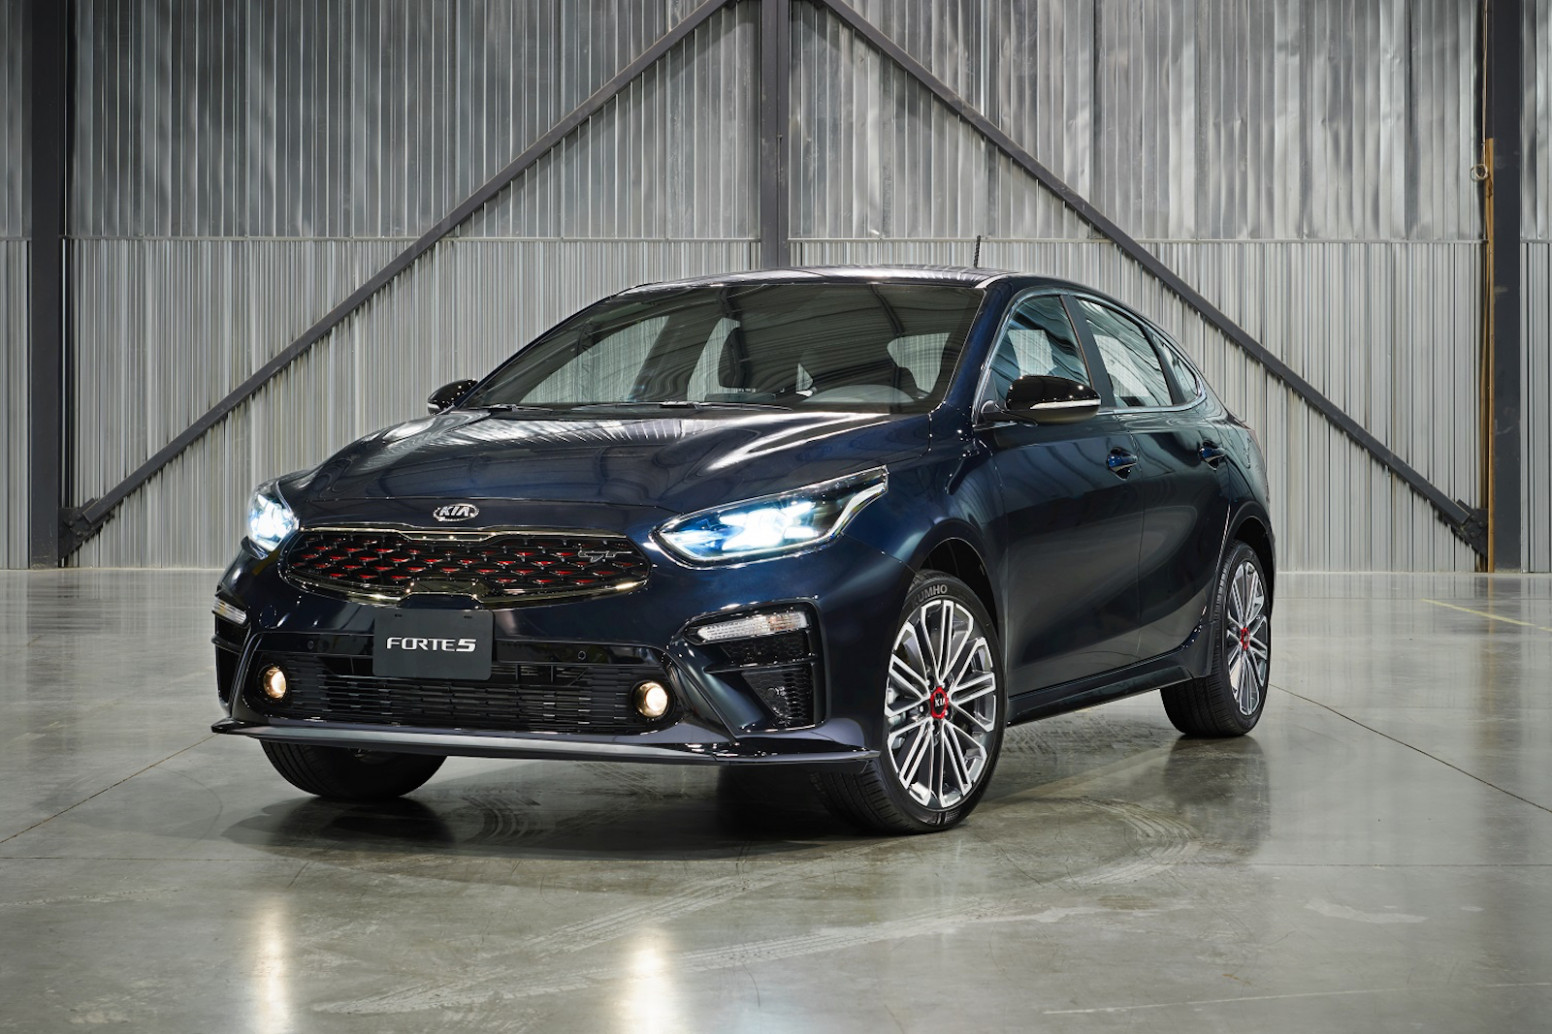 8 Kia Forte8 Debuts as a Handsome Hatchback » AutoGuide.com News